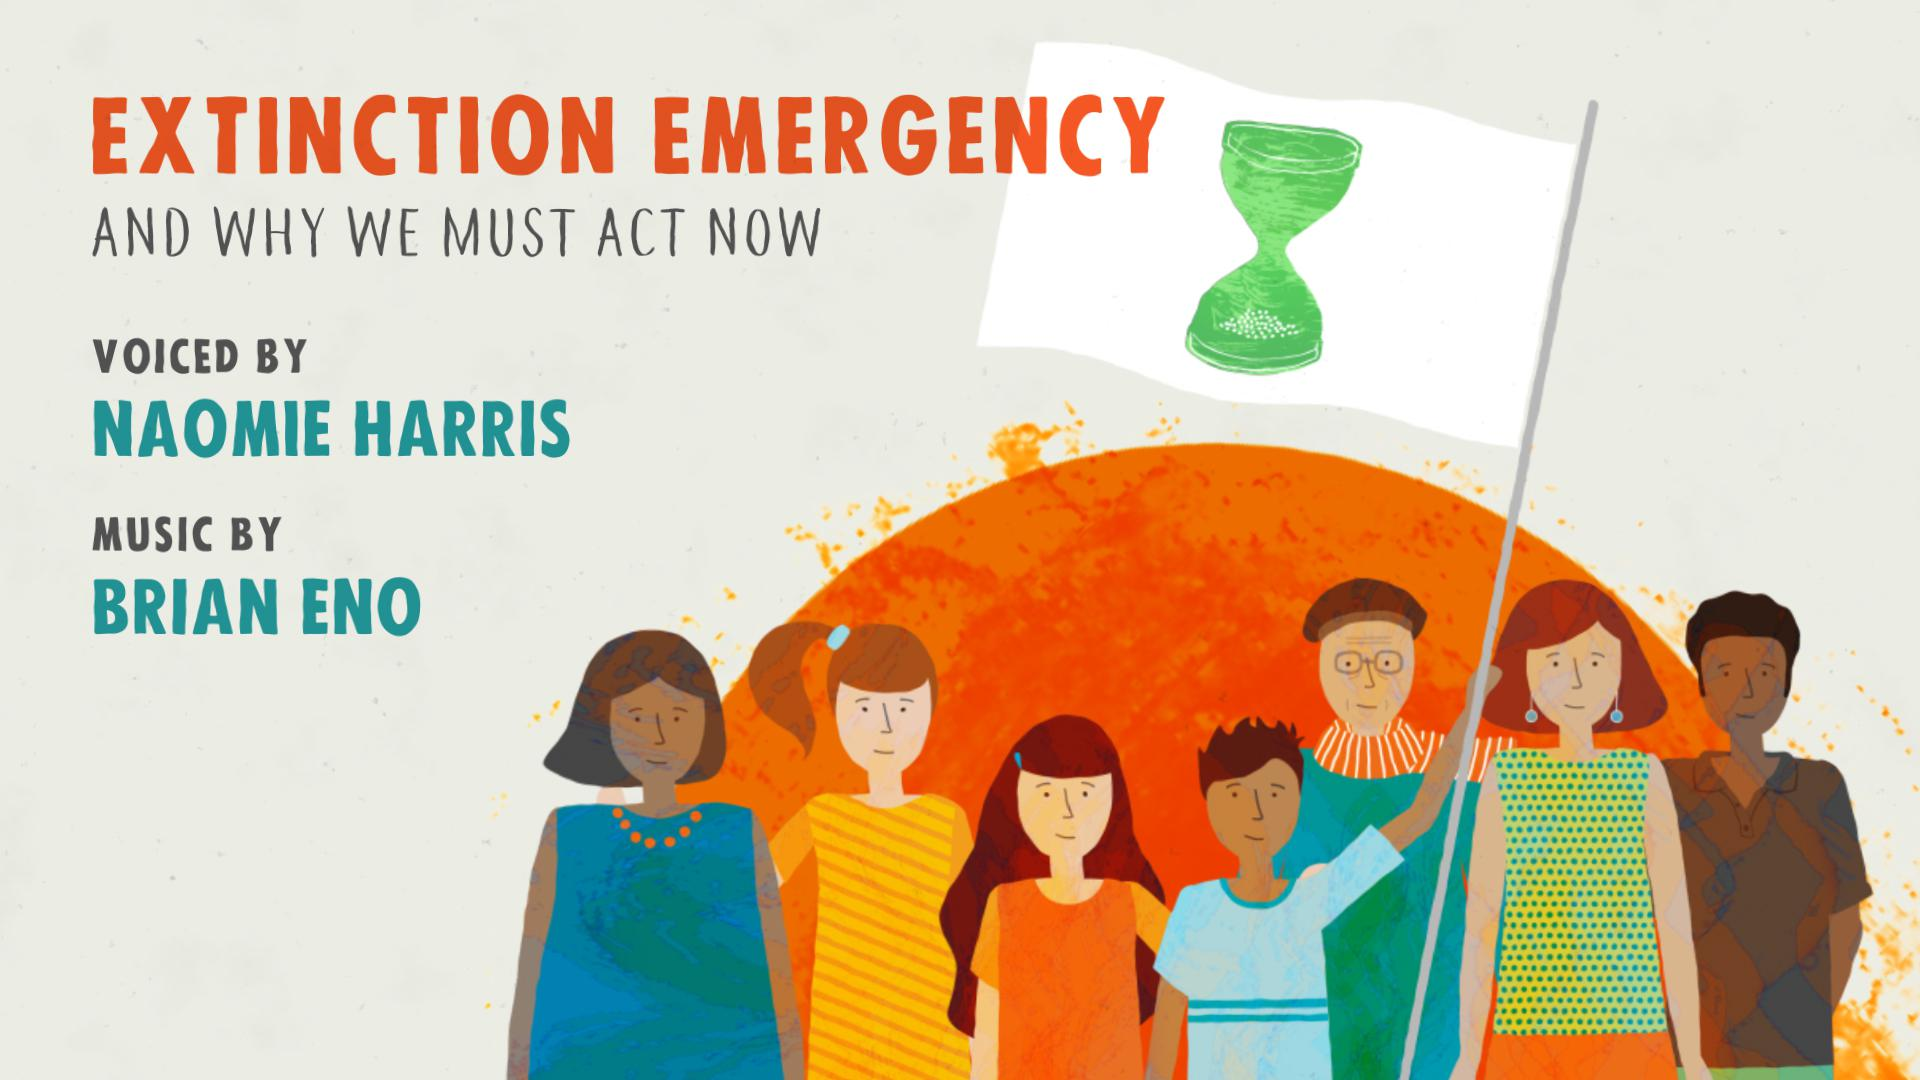 Extinction Emergency, and Why We Must Act Now